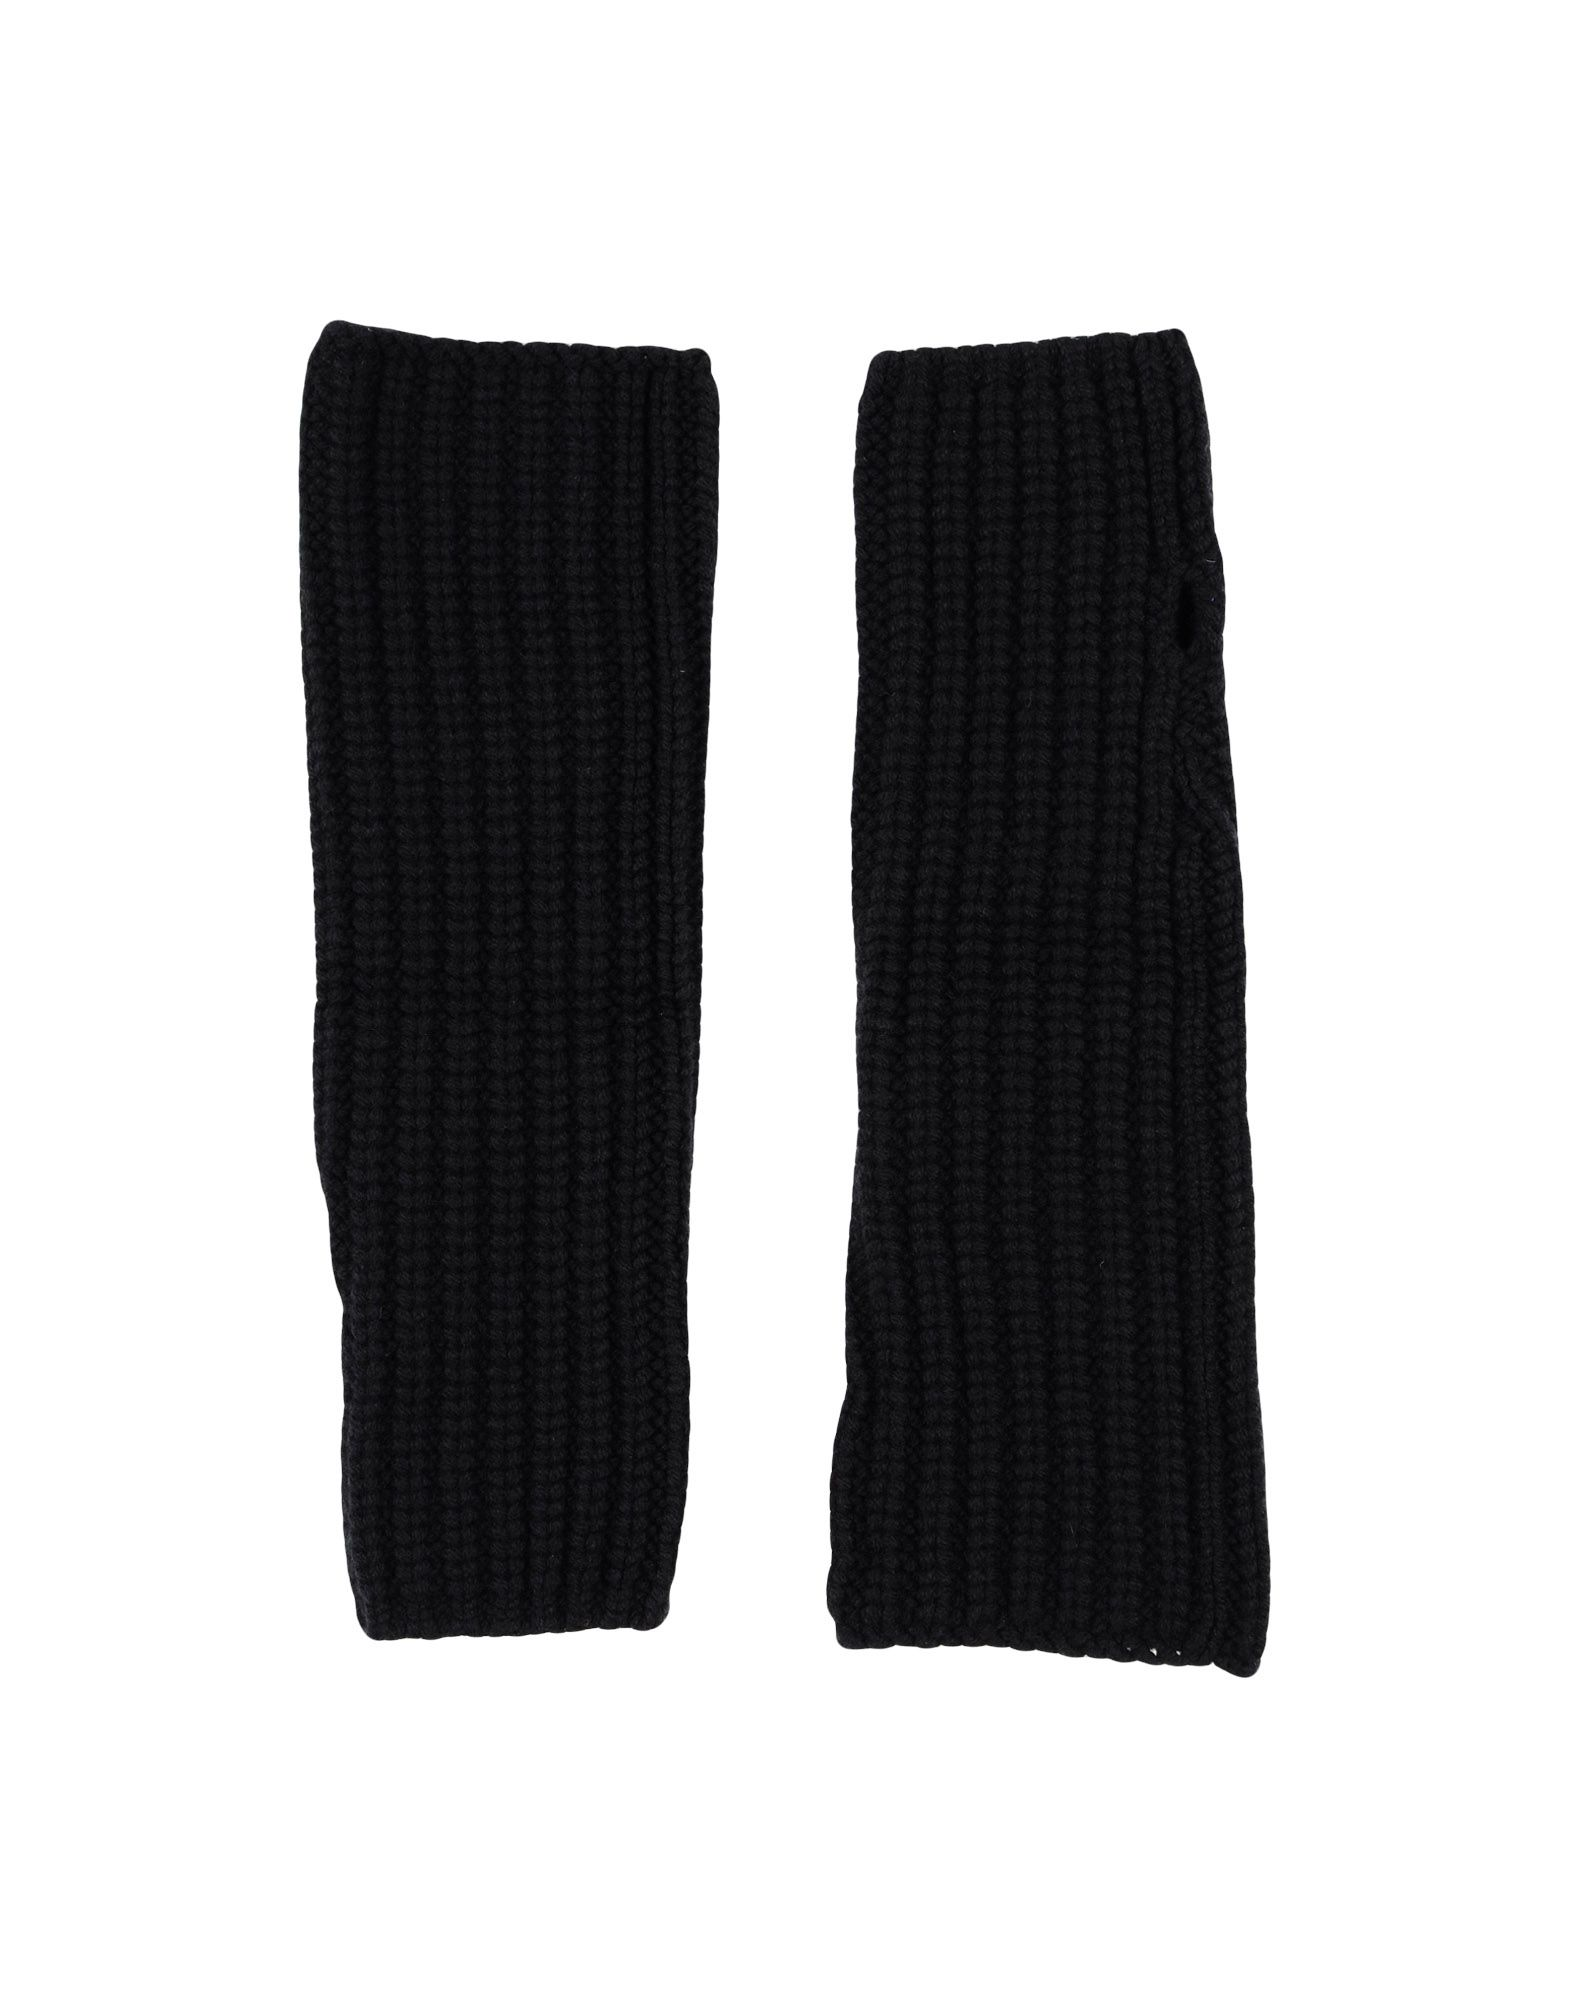 EXEMPLAIRE Gloves in Black